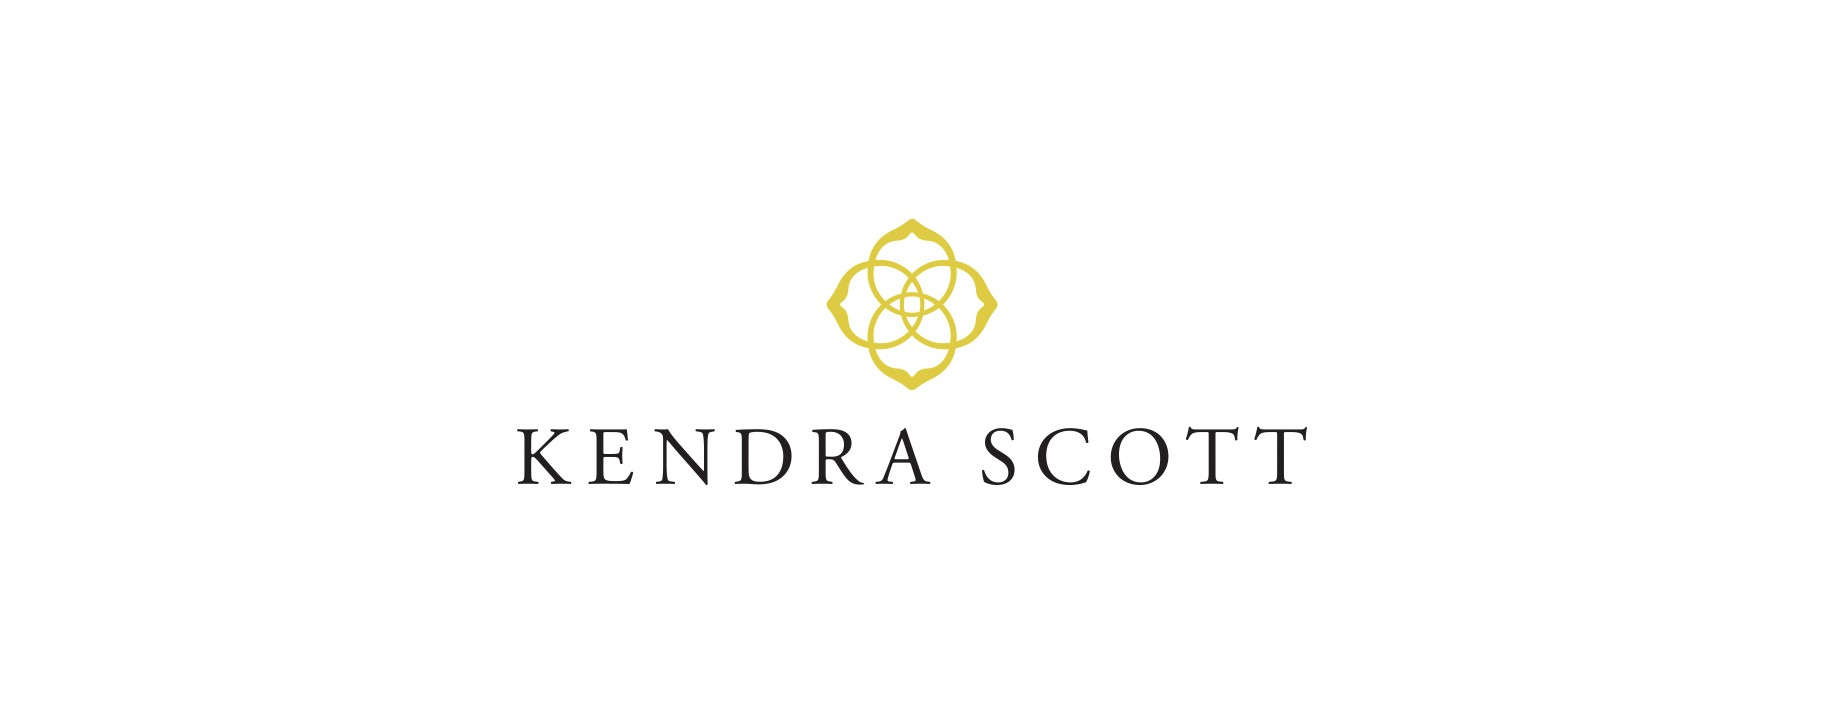 What I Learned From My Ux Design Internship At Kendra Scott Career Design And Accessibility By Weiyi Meng Medium